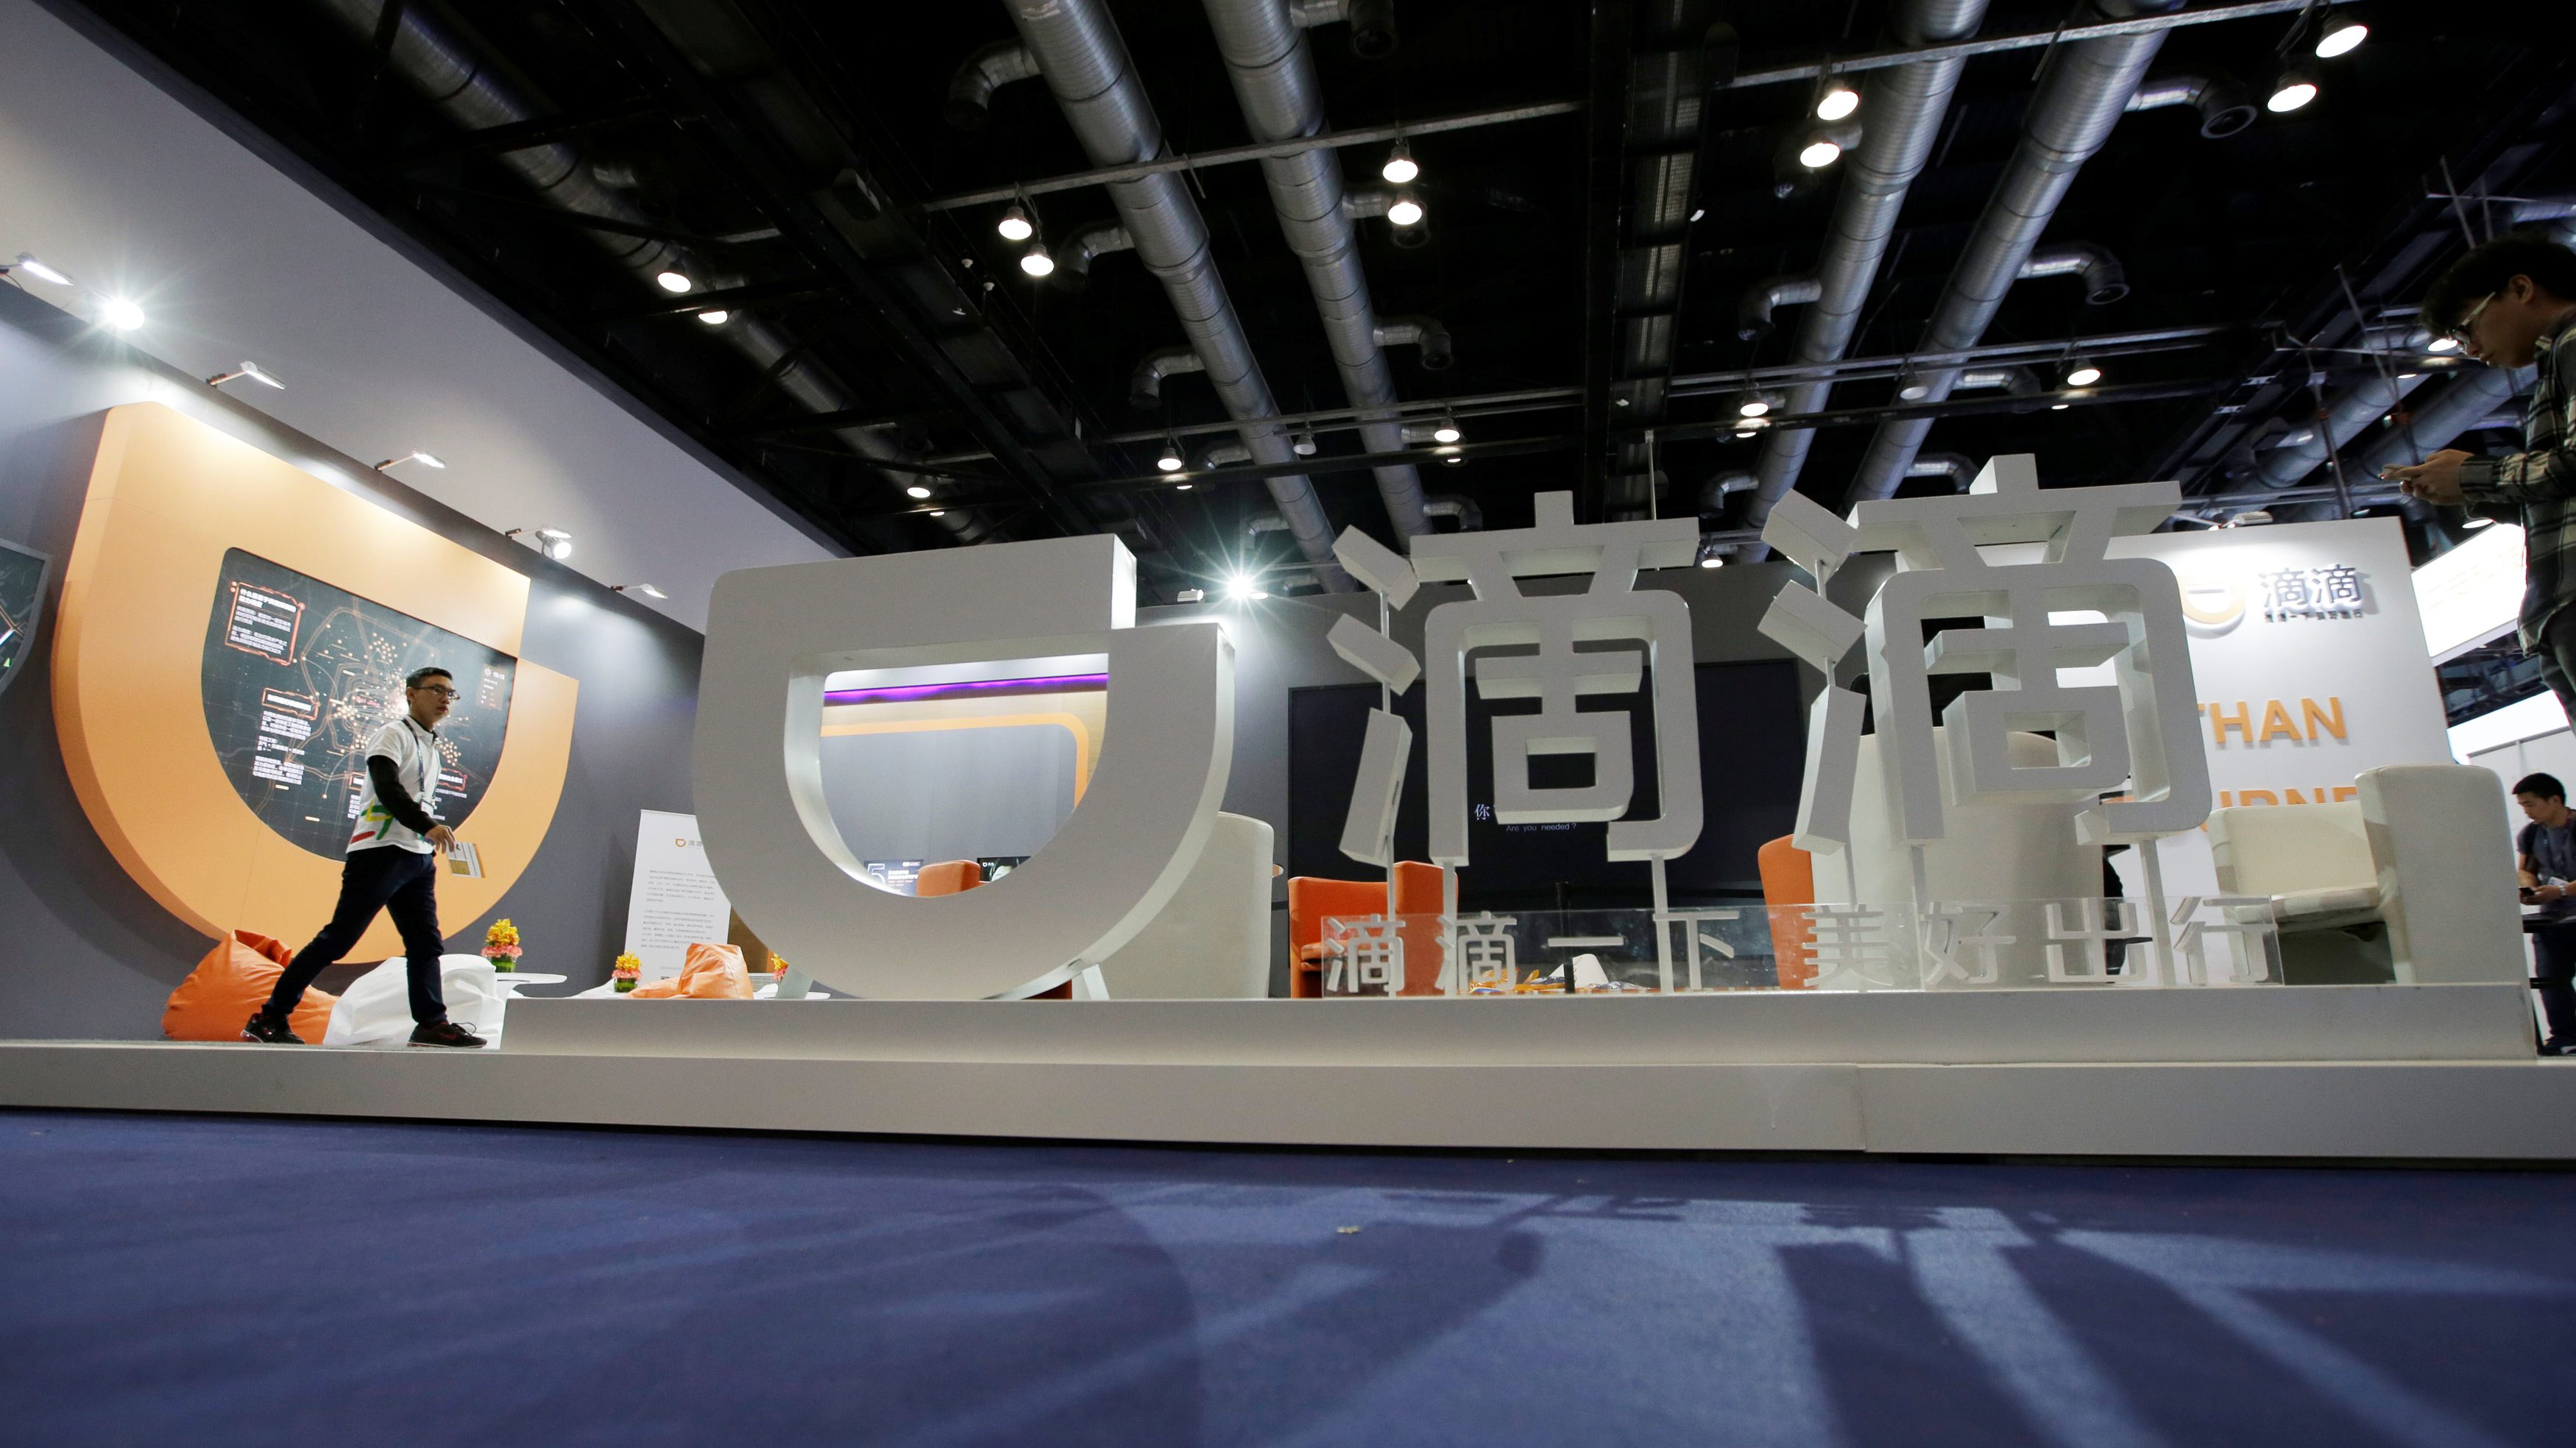 A staff member walks at Didi Chuxing's booth at the Global Mobile Internet Conference (GMIC) 2017 in Beijing, China April 28, 2017.